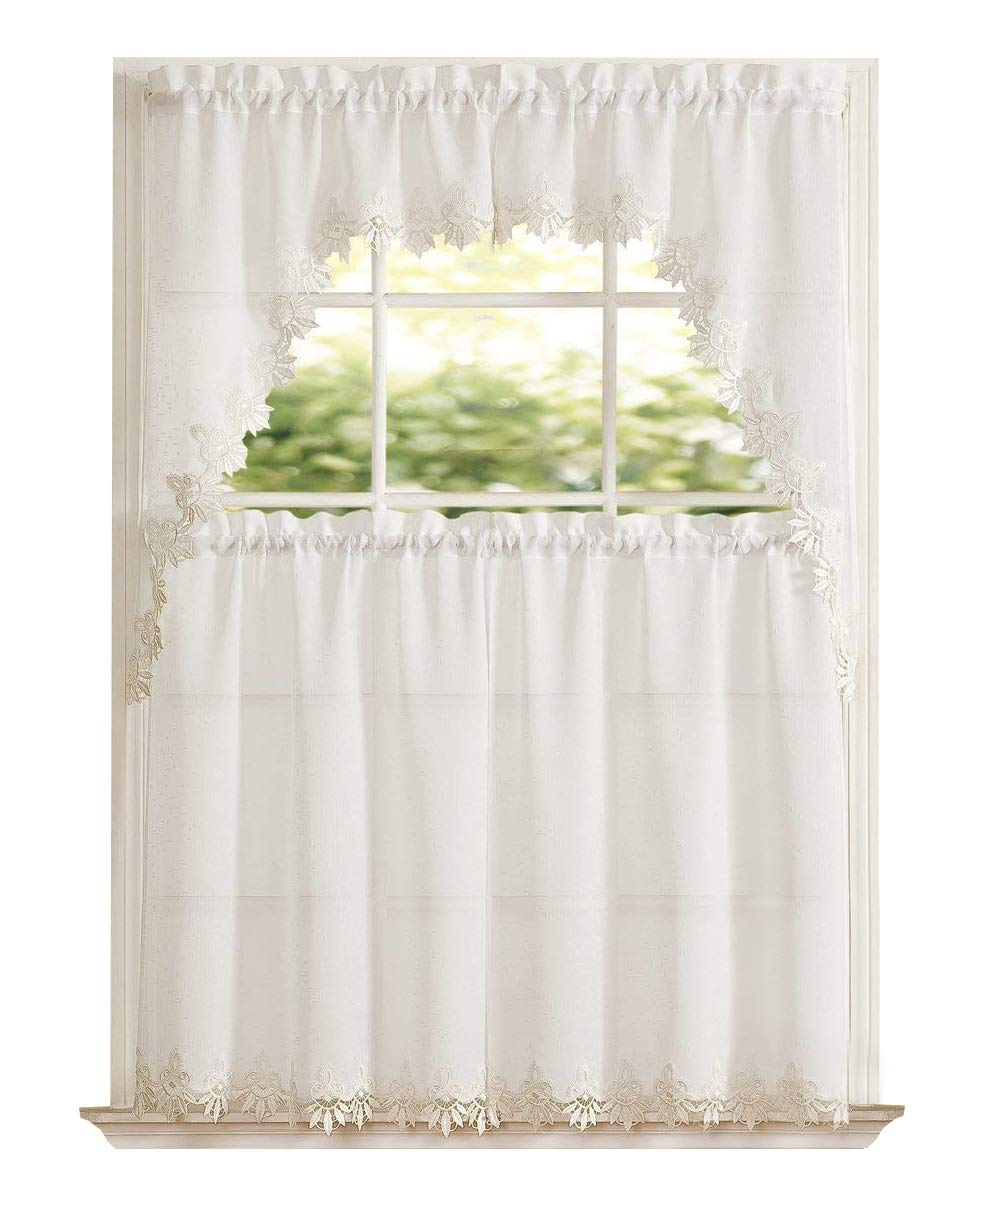 GoodGram Orchard Luxurious Matte Sheer & Macrame Kitchen Curtain Tier & Swag Set Assorted Colors (White)